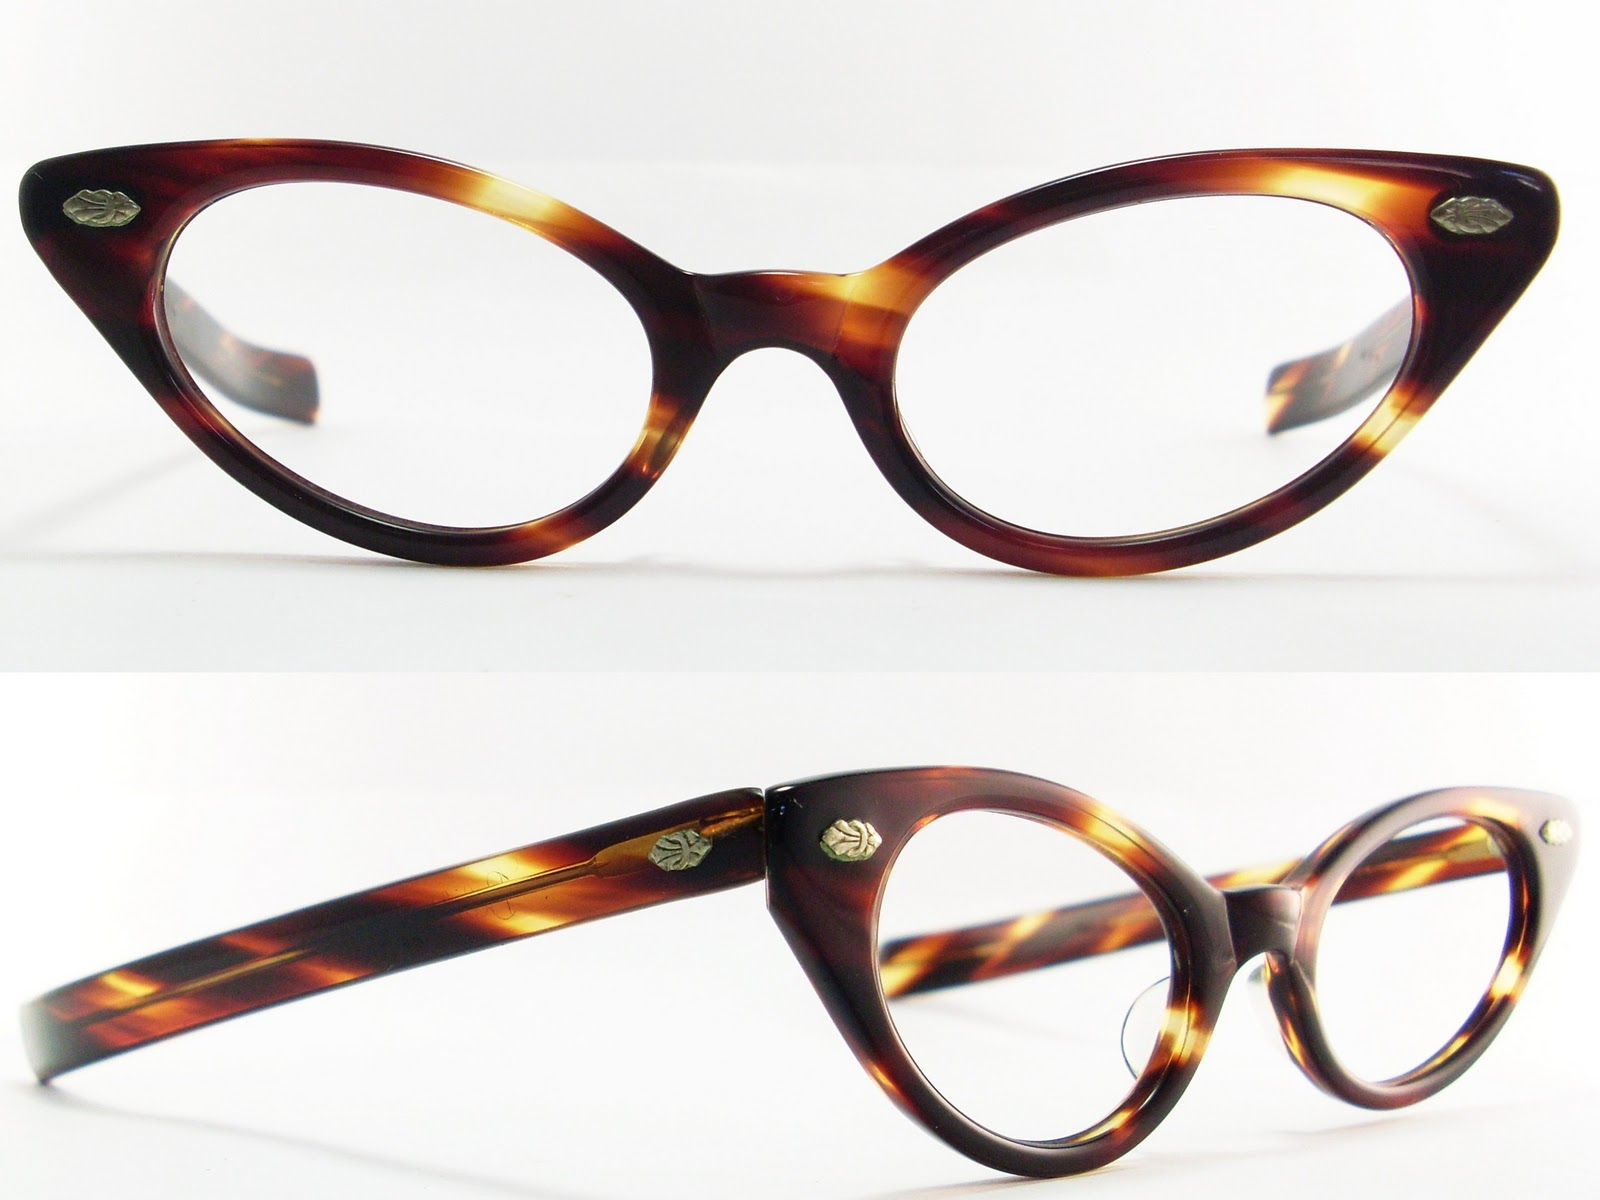 Vintage Eyeglasses Frames Eyewear Sunglasses 50S: VINTAGE CAT EYE ...